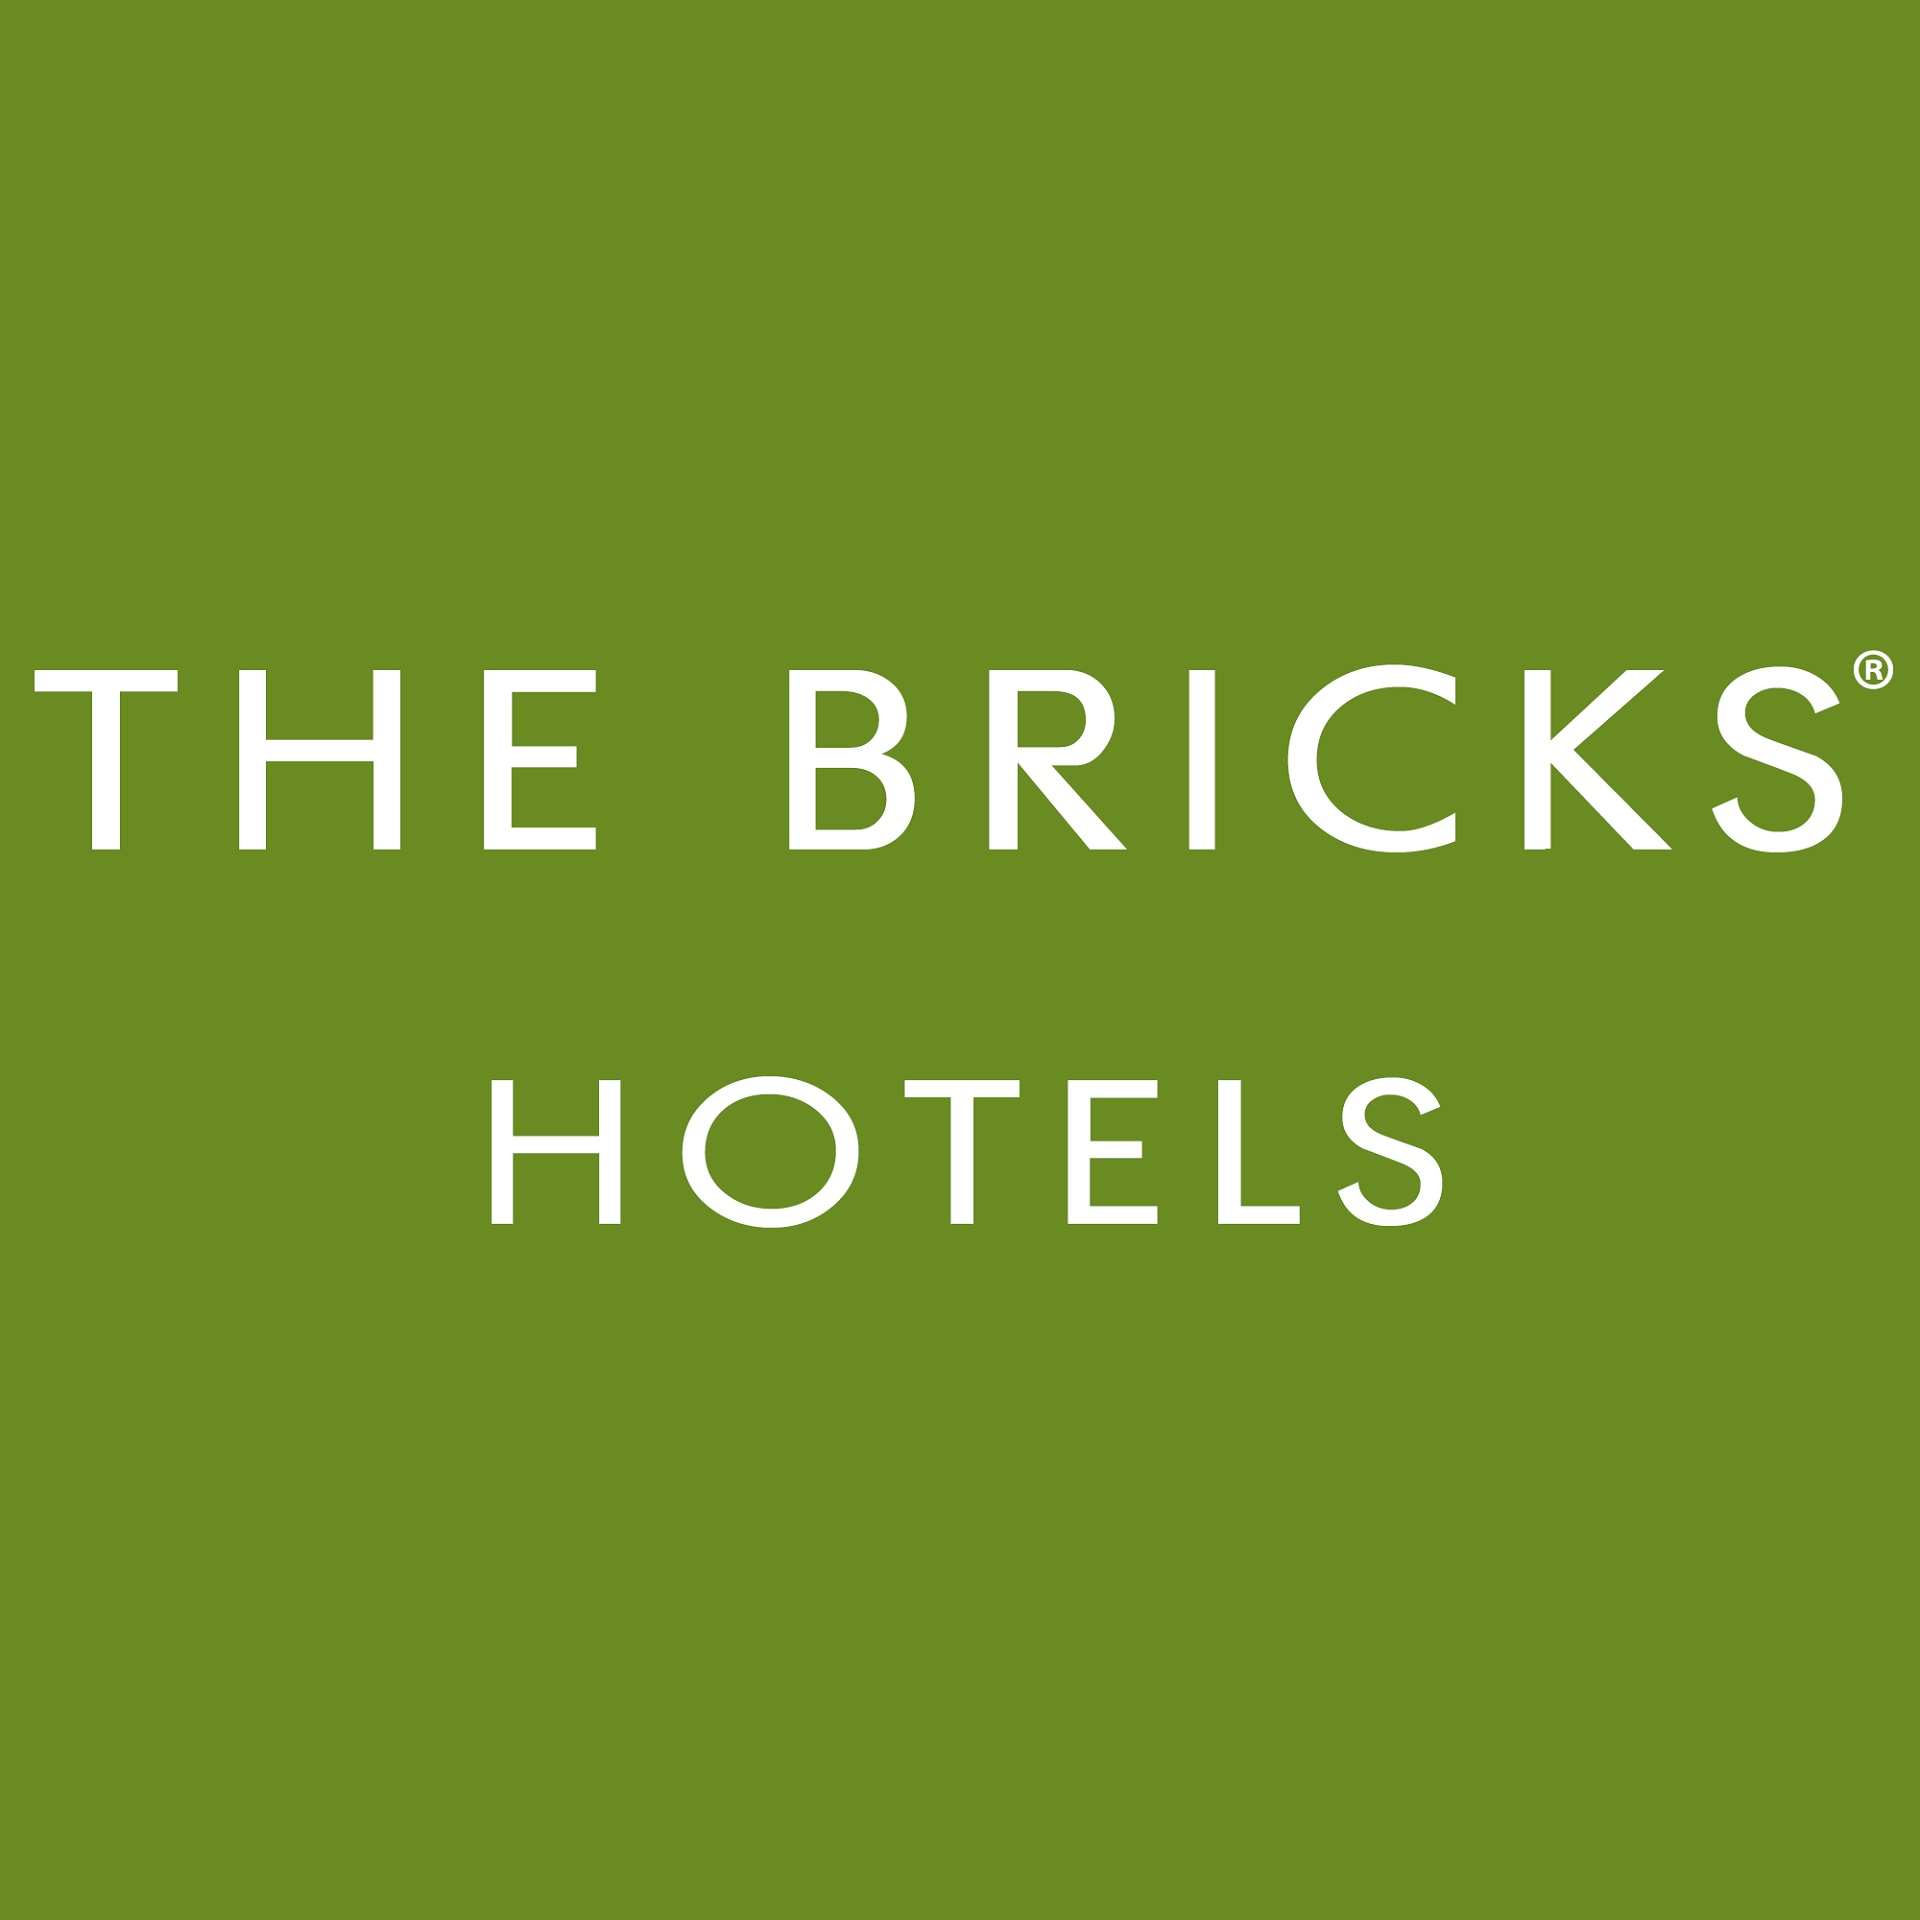 The Bricks Hotels